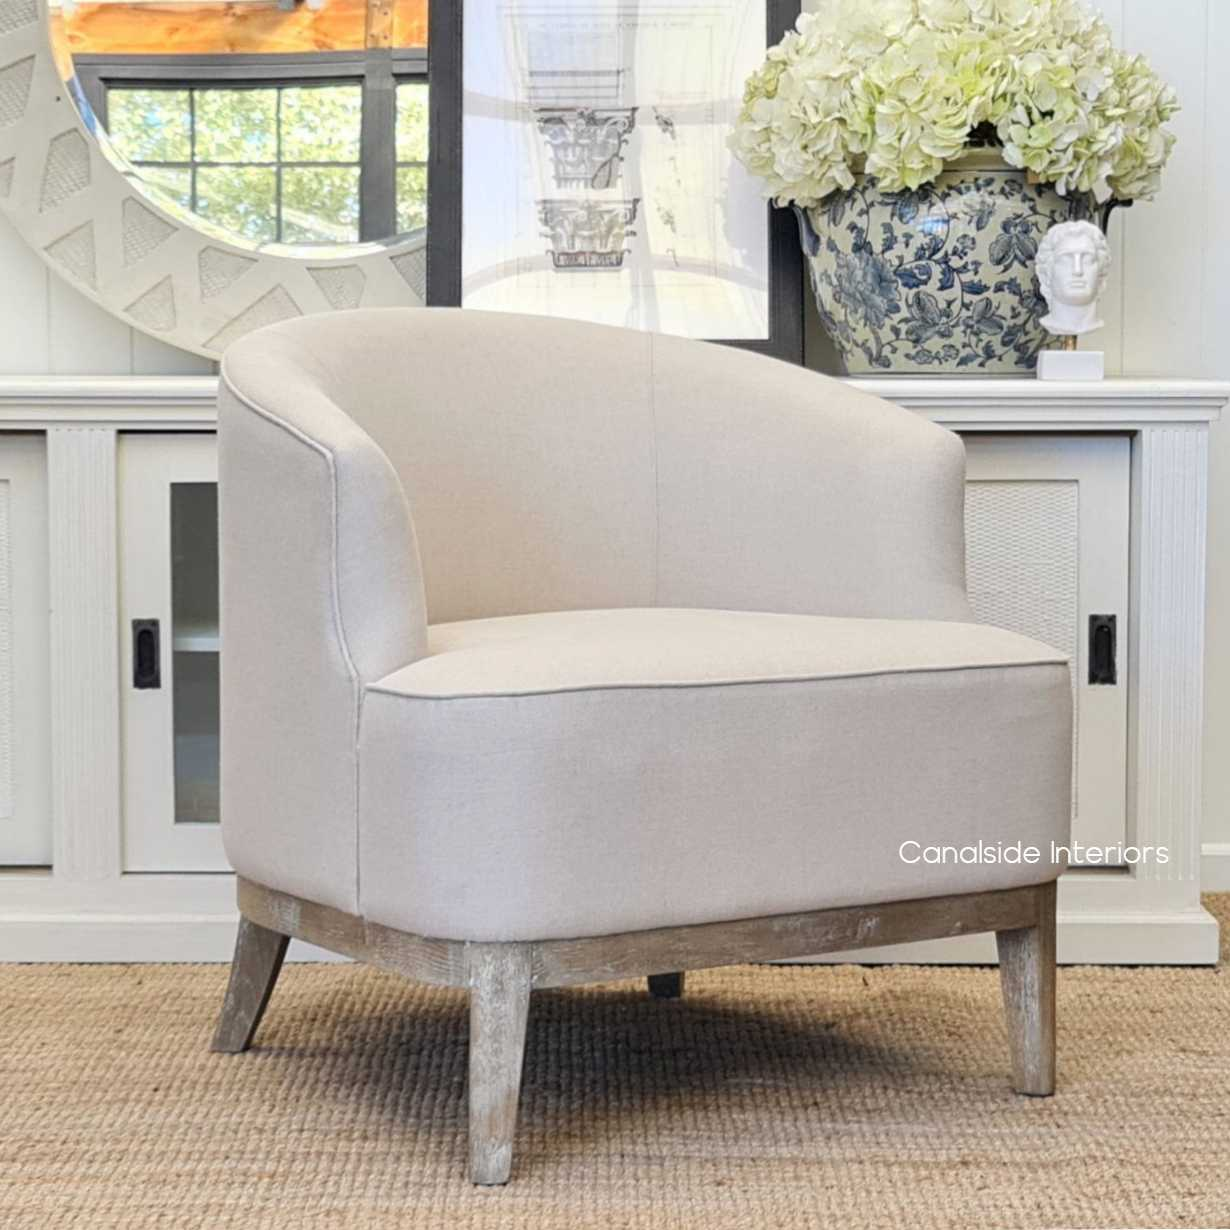 Hamilton Occasional Tub Armchair  CHAIRS, HAMPTONS Style, PLANTATION Style, CHAIRS Lounge, LIVING Room, LIVING Chairs, bedroom, tub chair